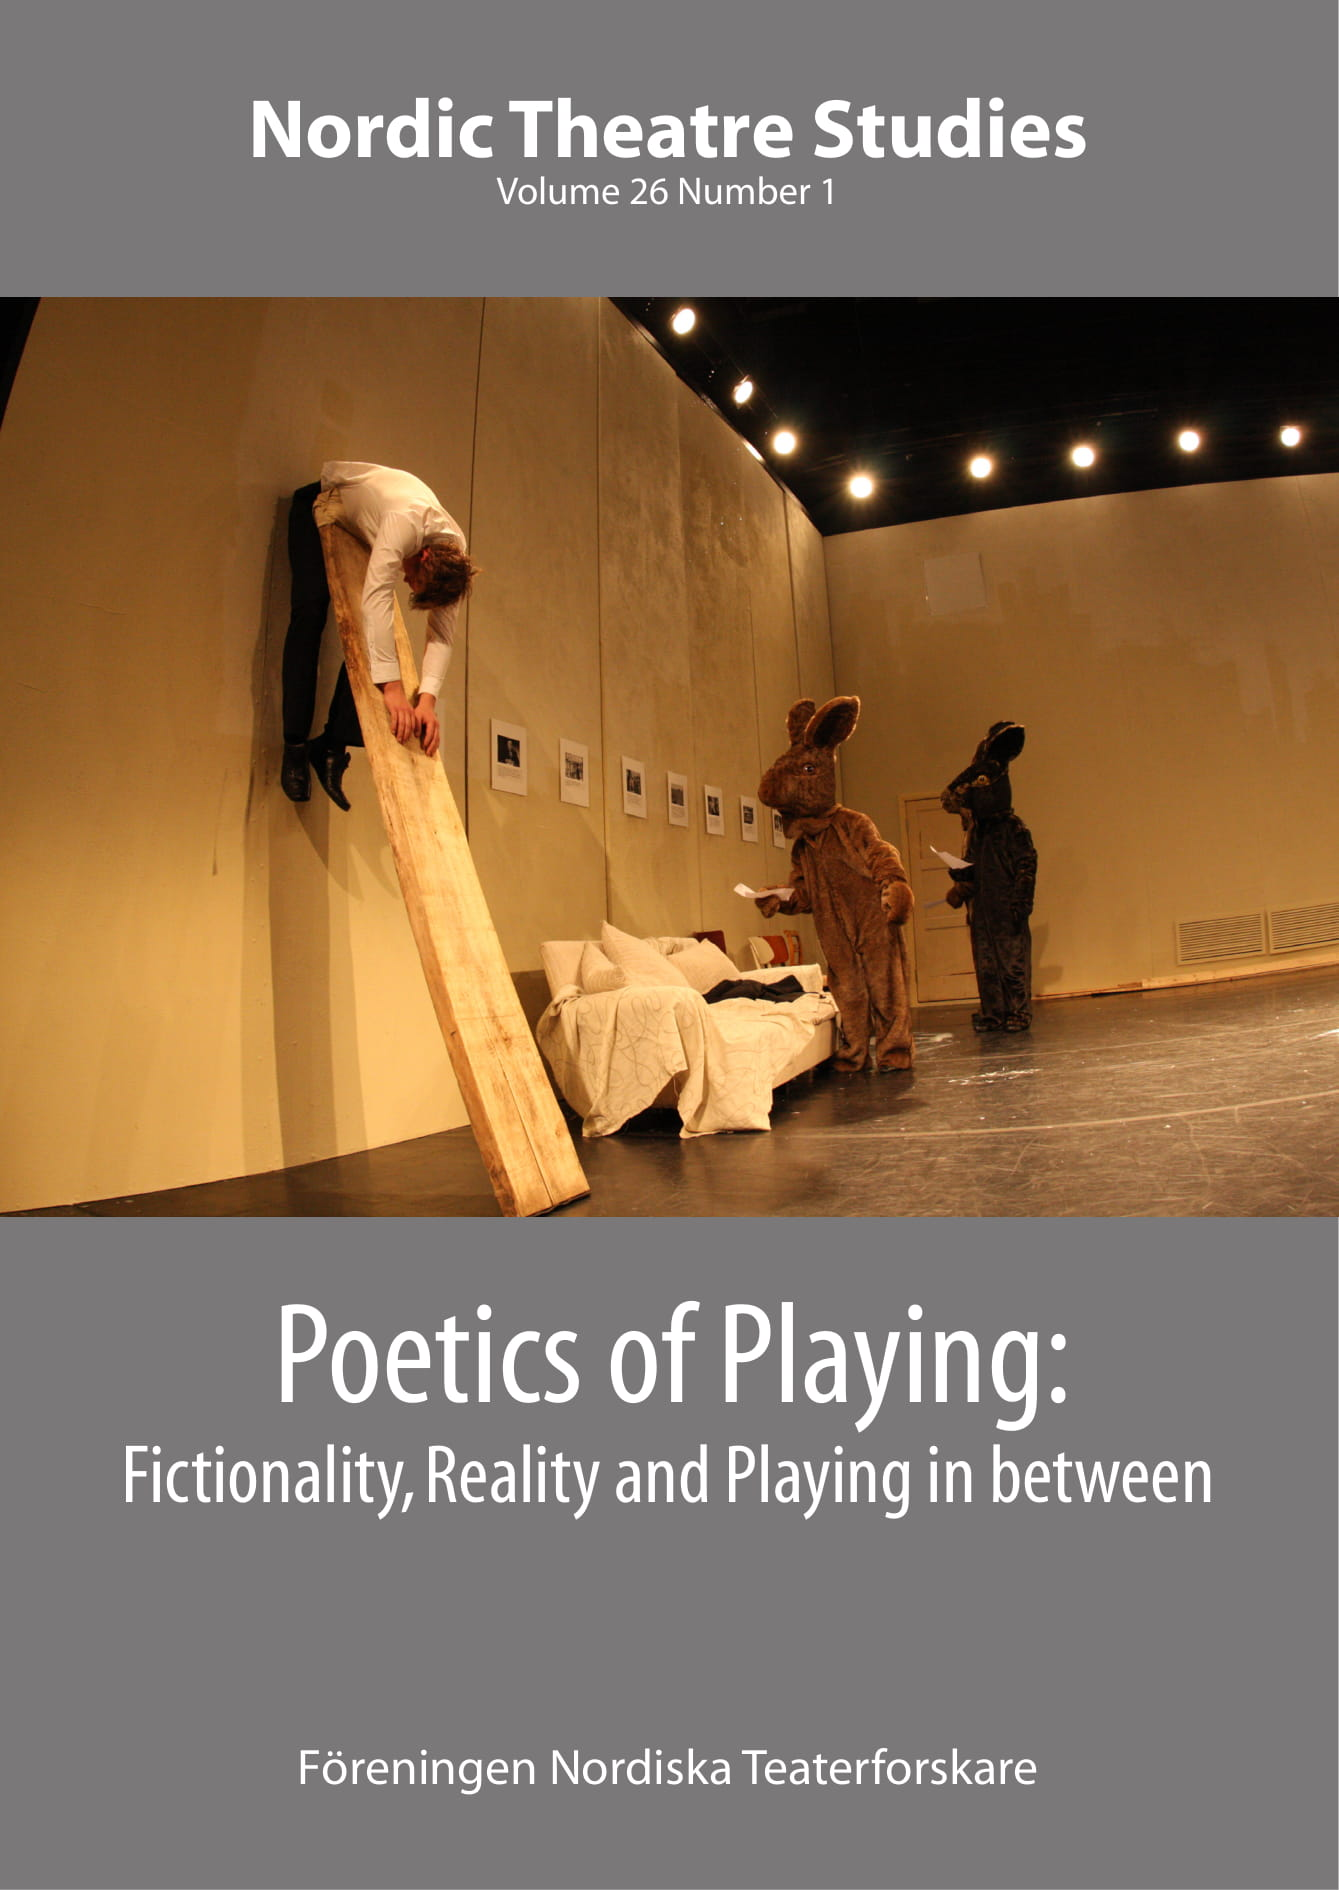 View Vol. 26 No. 1 (2014): Poetics of Playing